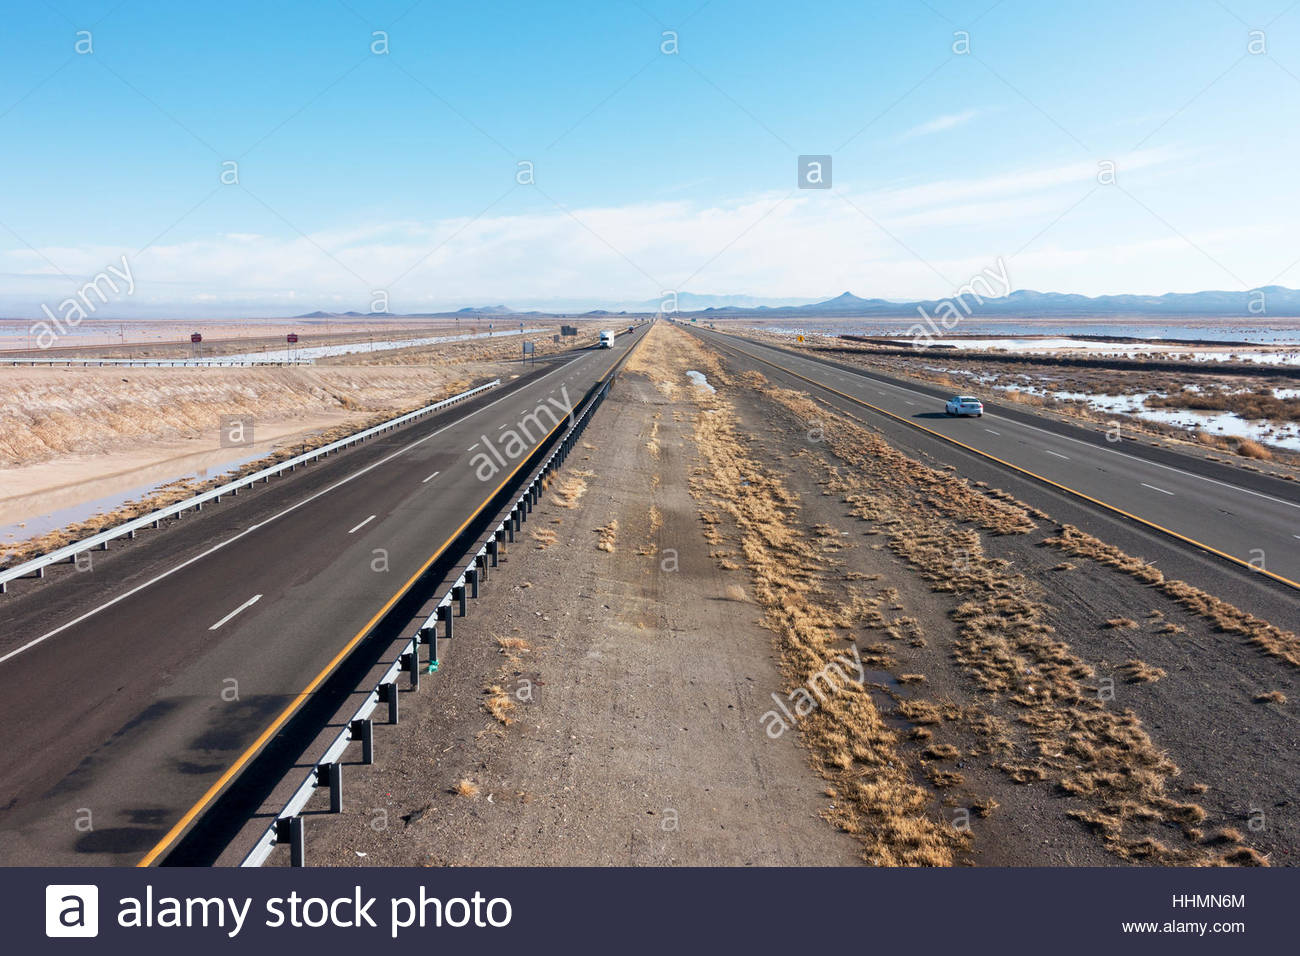 Interstate 10 in southwestern 'New Mexico' looking east - Stock Image